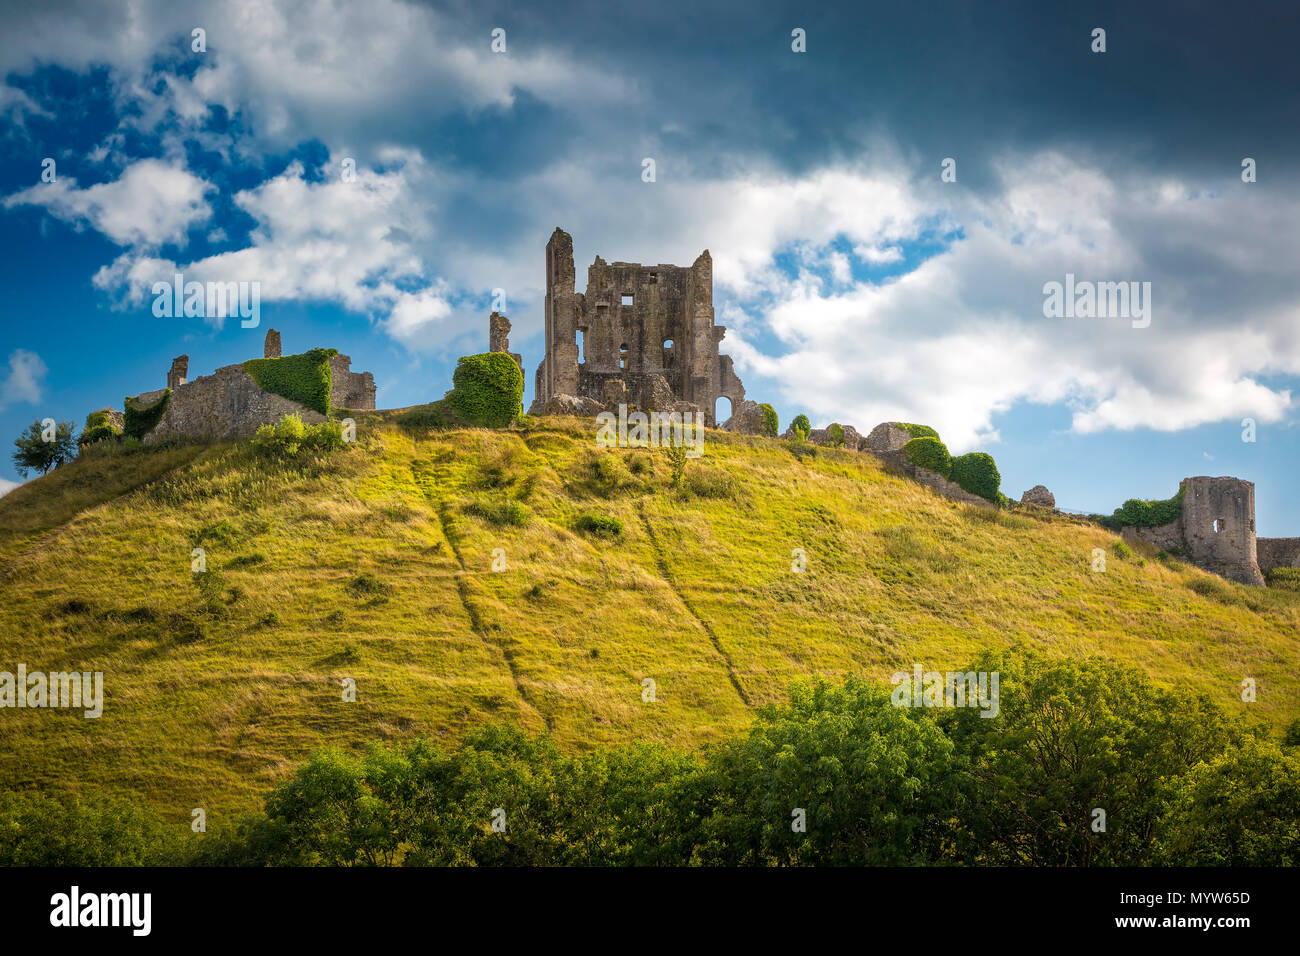 Ruins of Corfe Castle near Wareham, Isle of Purbeck, Dorset, England - Stock Image